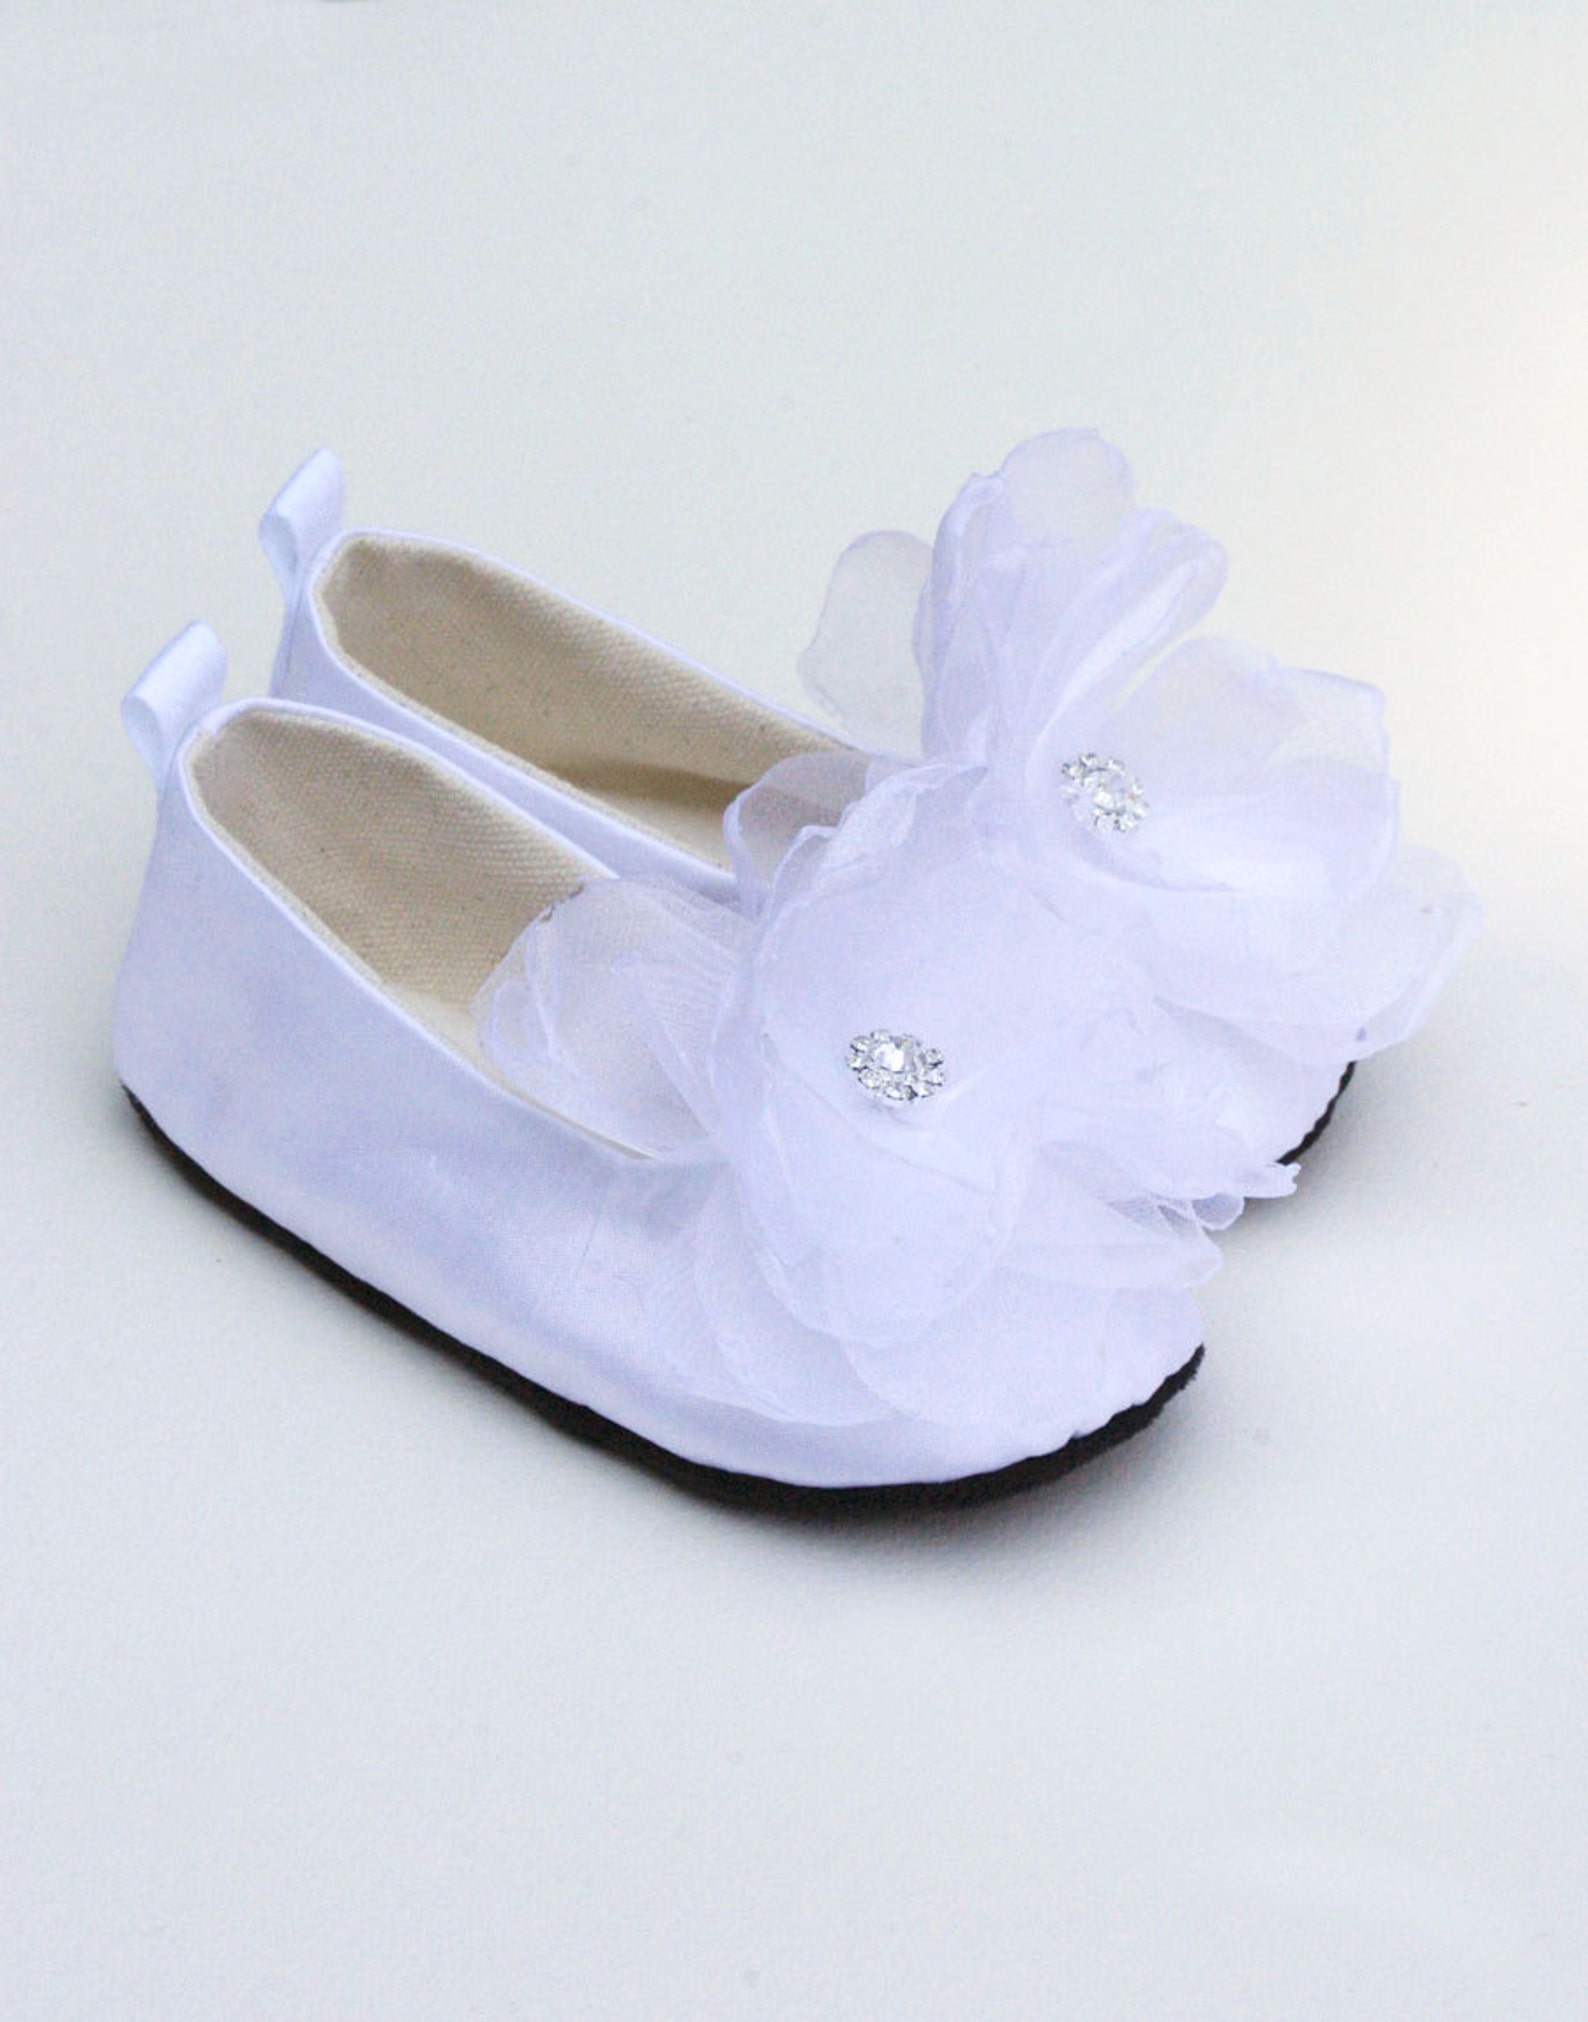 ivory silk toddler shoe, little girls wedding shoe, easter shoe, flower girl shoe, baby ballet slipper, christening shoe, baby s